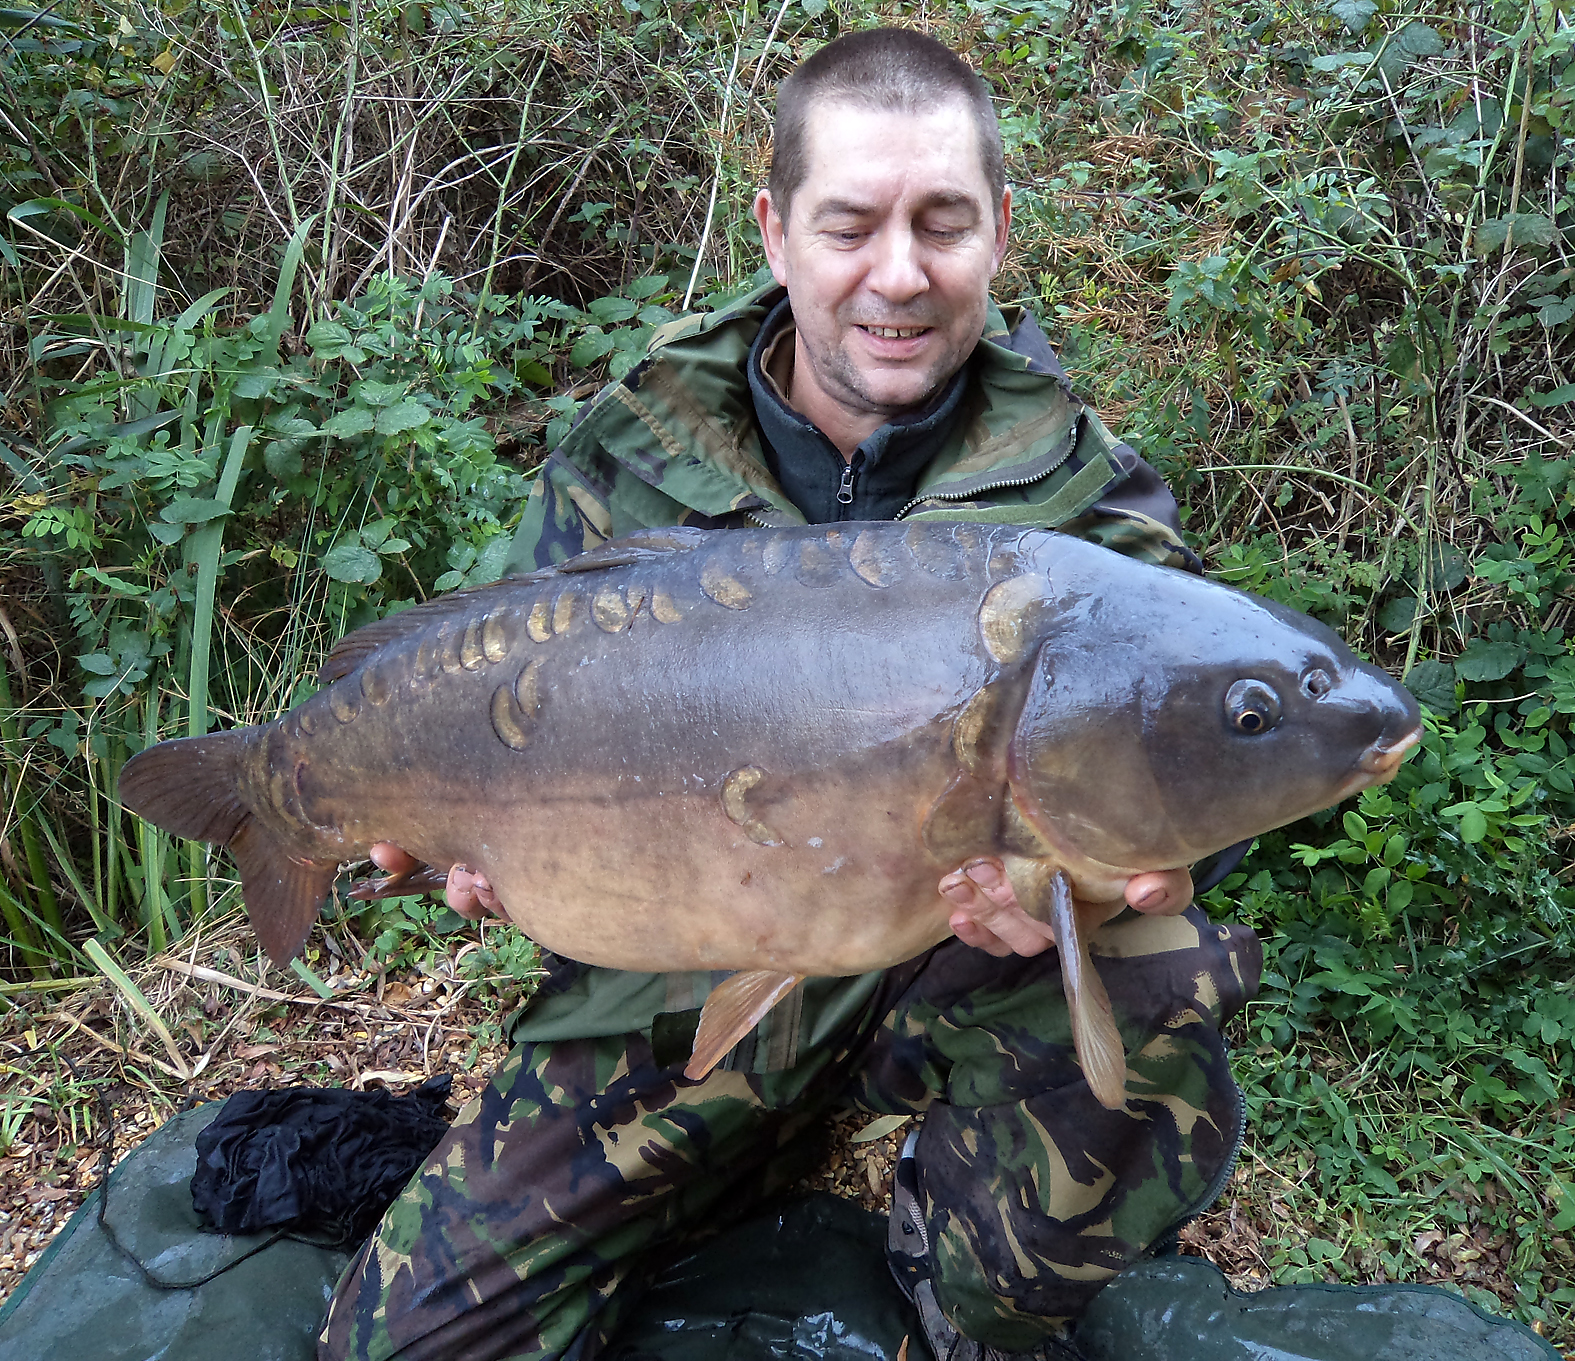 Gary shows a 19lb'er caught at close range at one of our club waters